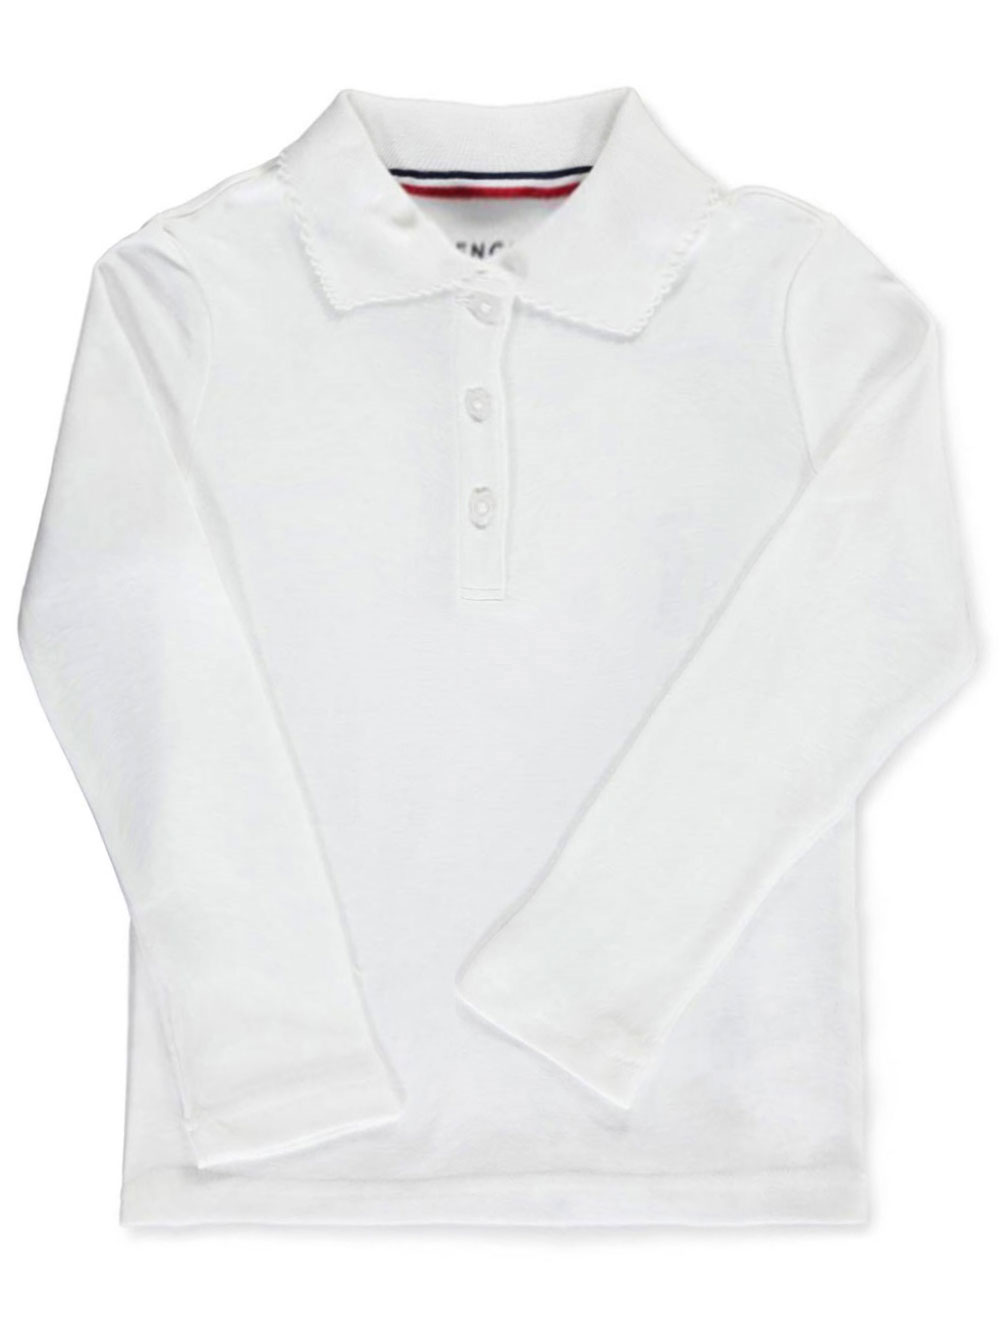 Image of French Toast School Uniform Big Girls LS Fitted Knit Polo With Picot Collar Sizes 7  20  white 78